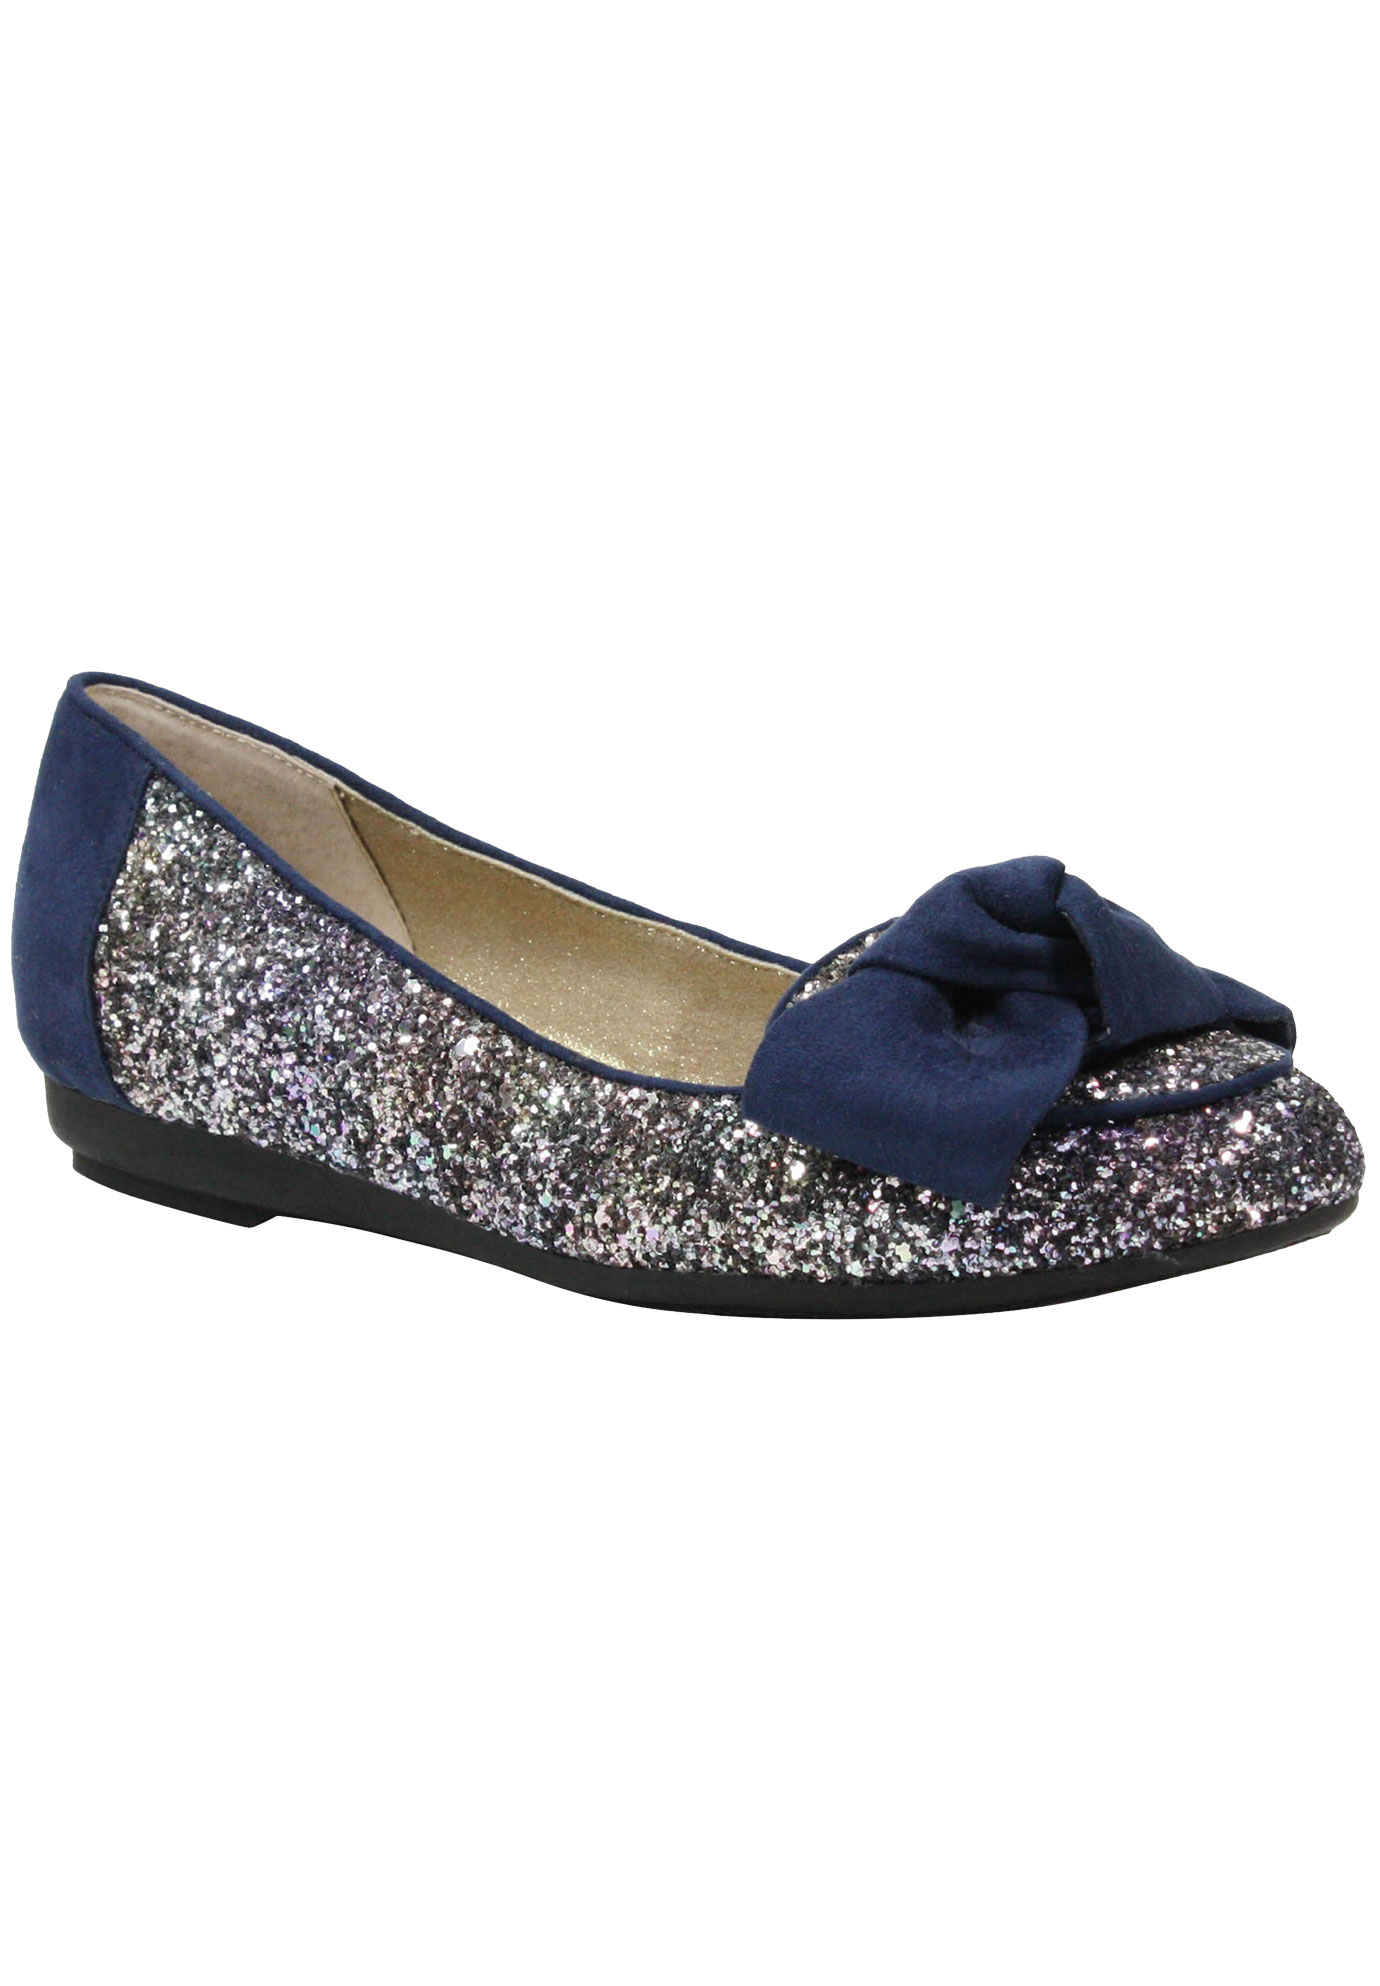 Bacton Flats by J.Renee®, BLUE GOLD MULTI, hi-res